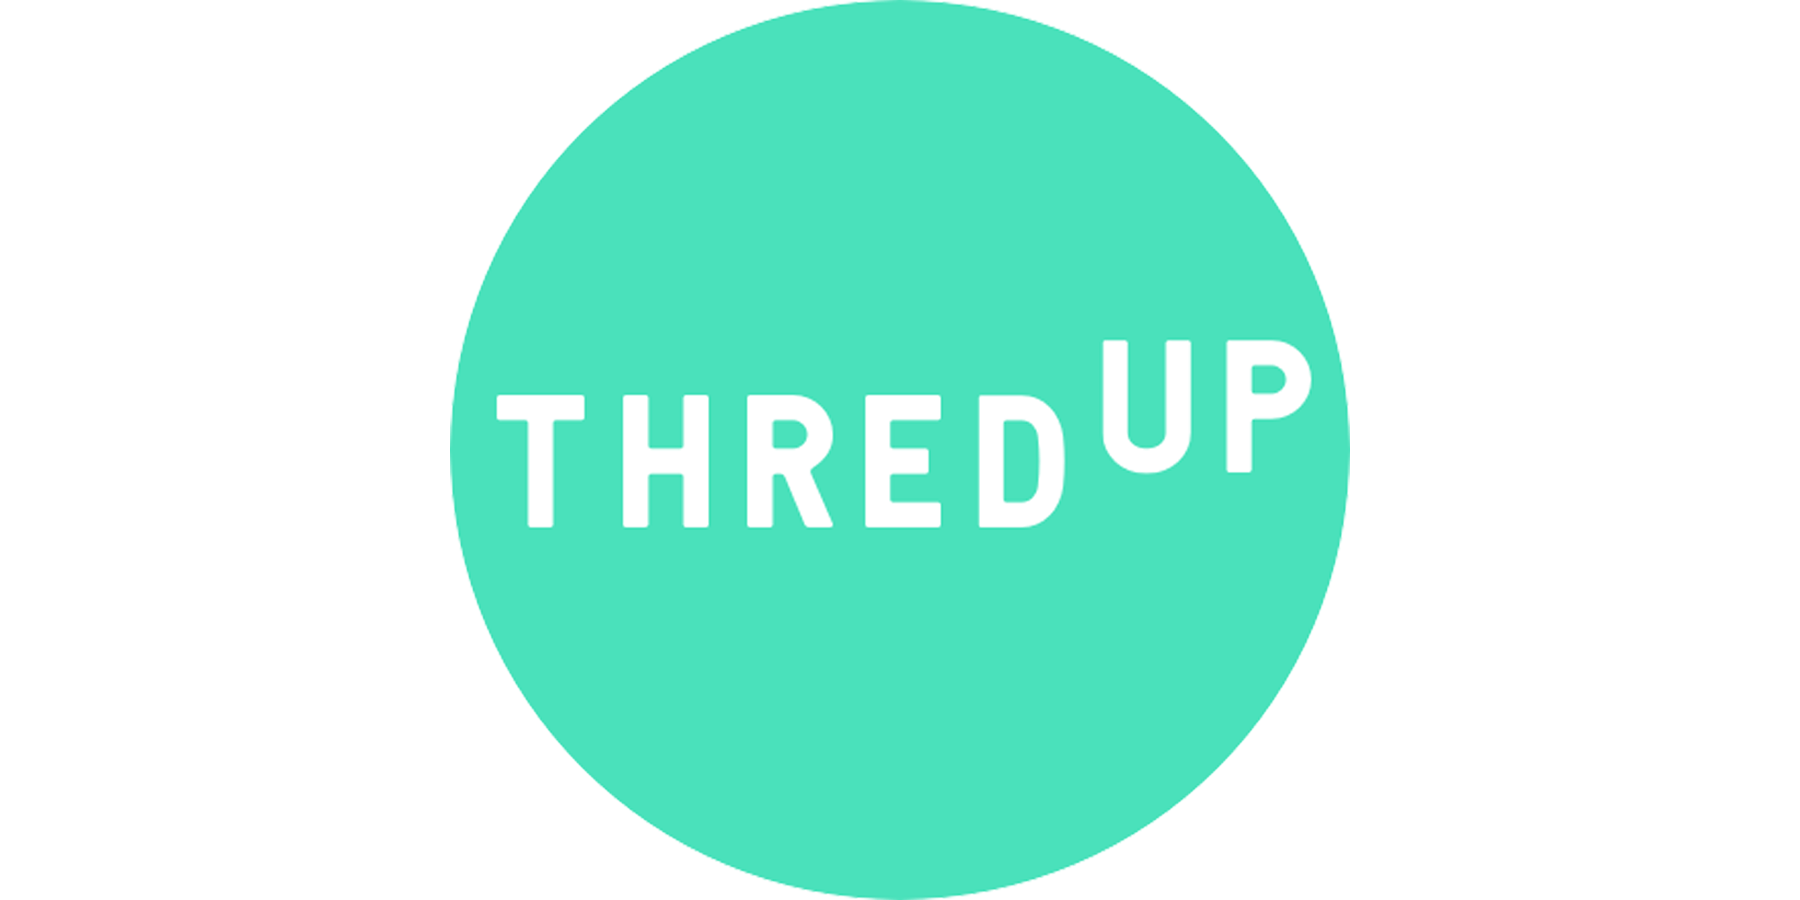 ThreadUP full color logo